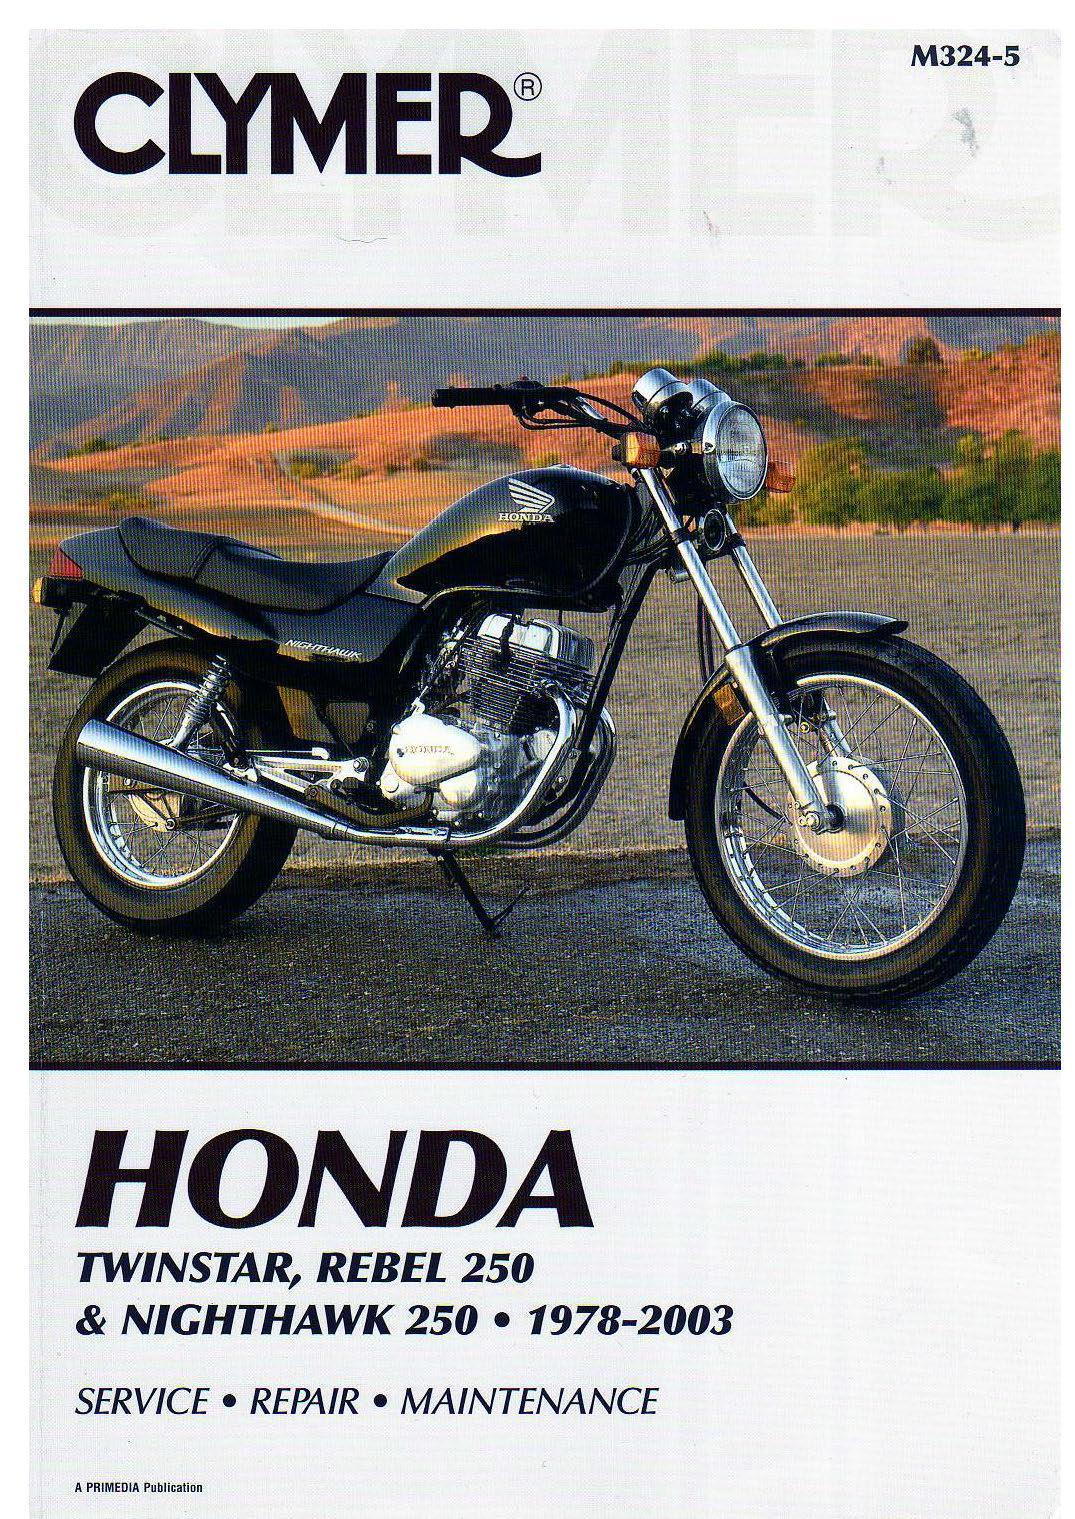 Workshop manual CMX250 Rebel / Twinstar / Nighthawk (1978-2003)